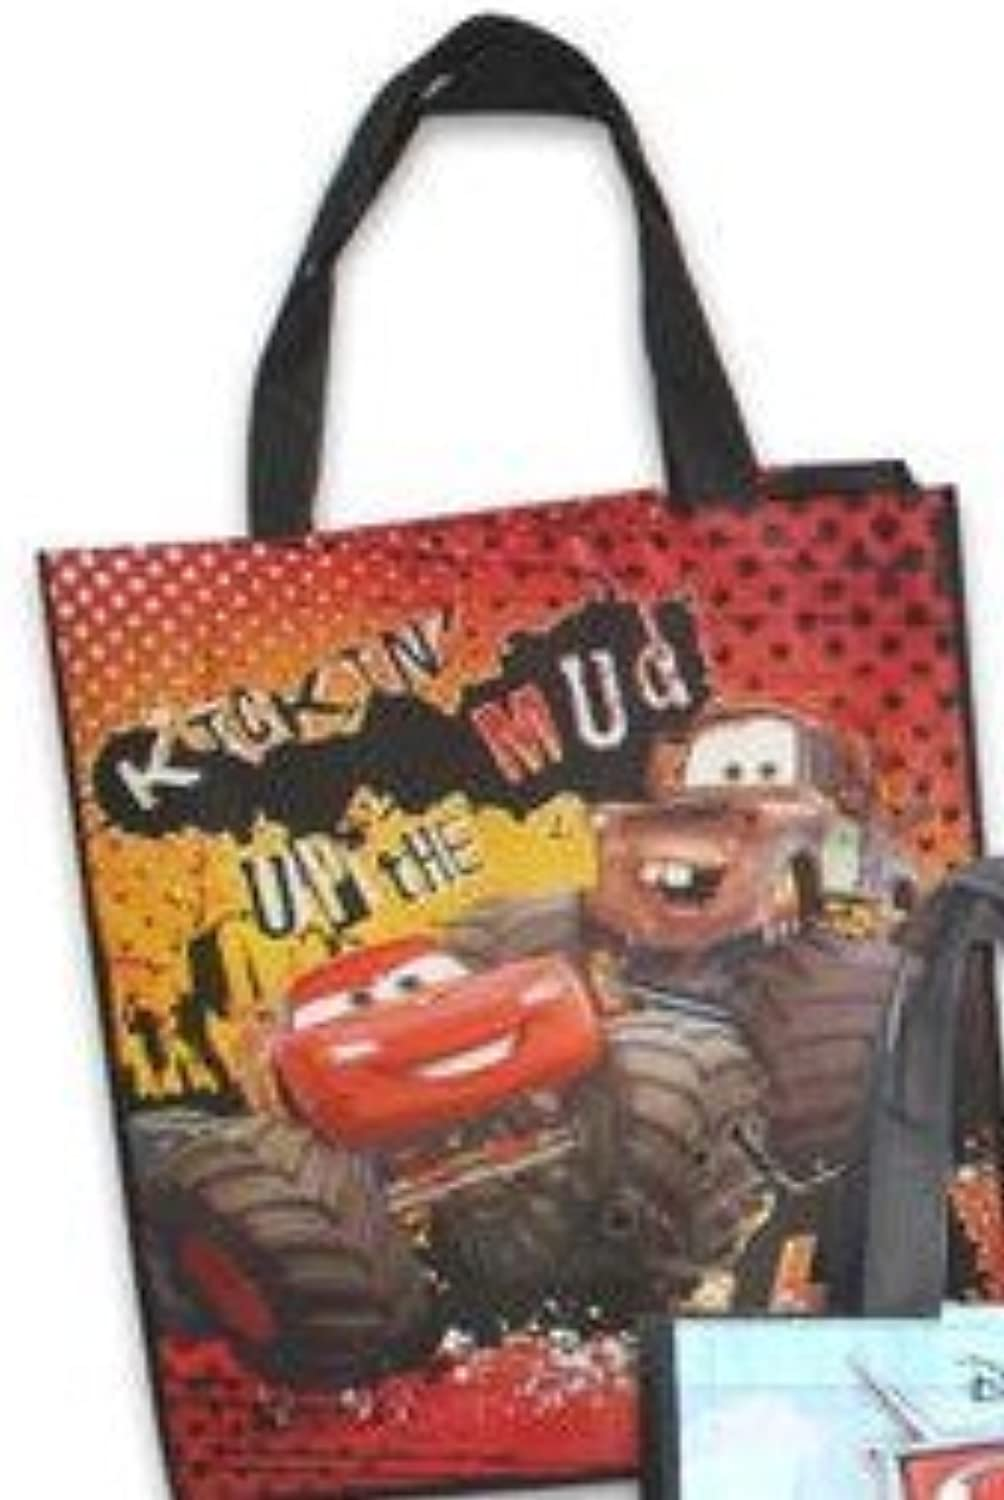 8-pack Pixar Cars Tote Bags (Large 16 x15 x7 ) AND 8 sheet Spiderman Stickers (3 x6 ) AND 8 Kooky Silicone Bracelets B00SGUB7KI | Spielen Sie Leidenschaft, spielen Sie die Ernte, spielen Sie die Welt